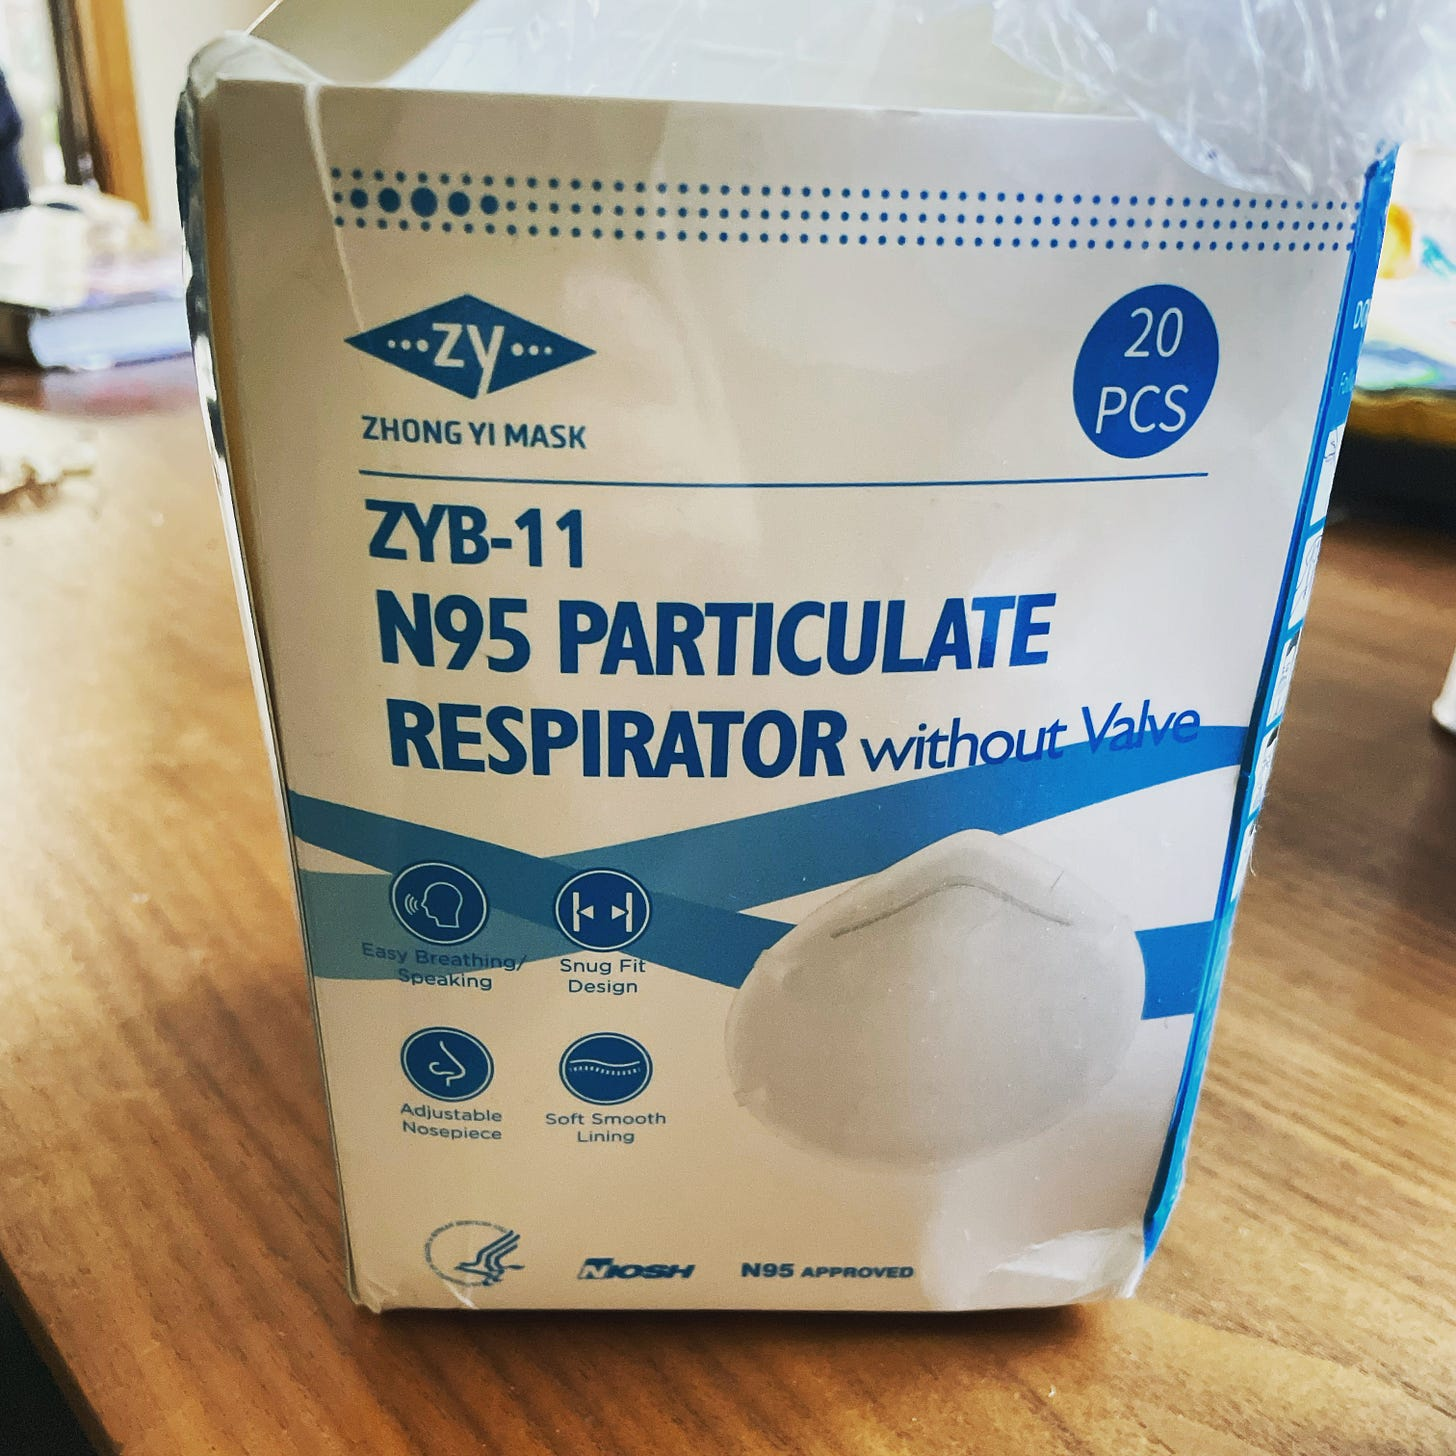 """An open and slightly distressed box of N95 masks. The blue lettering on a white box reads, in part, """"Zhong Yi Mask, ZYB-11, N95 Particulate Respirator without valve"""""""